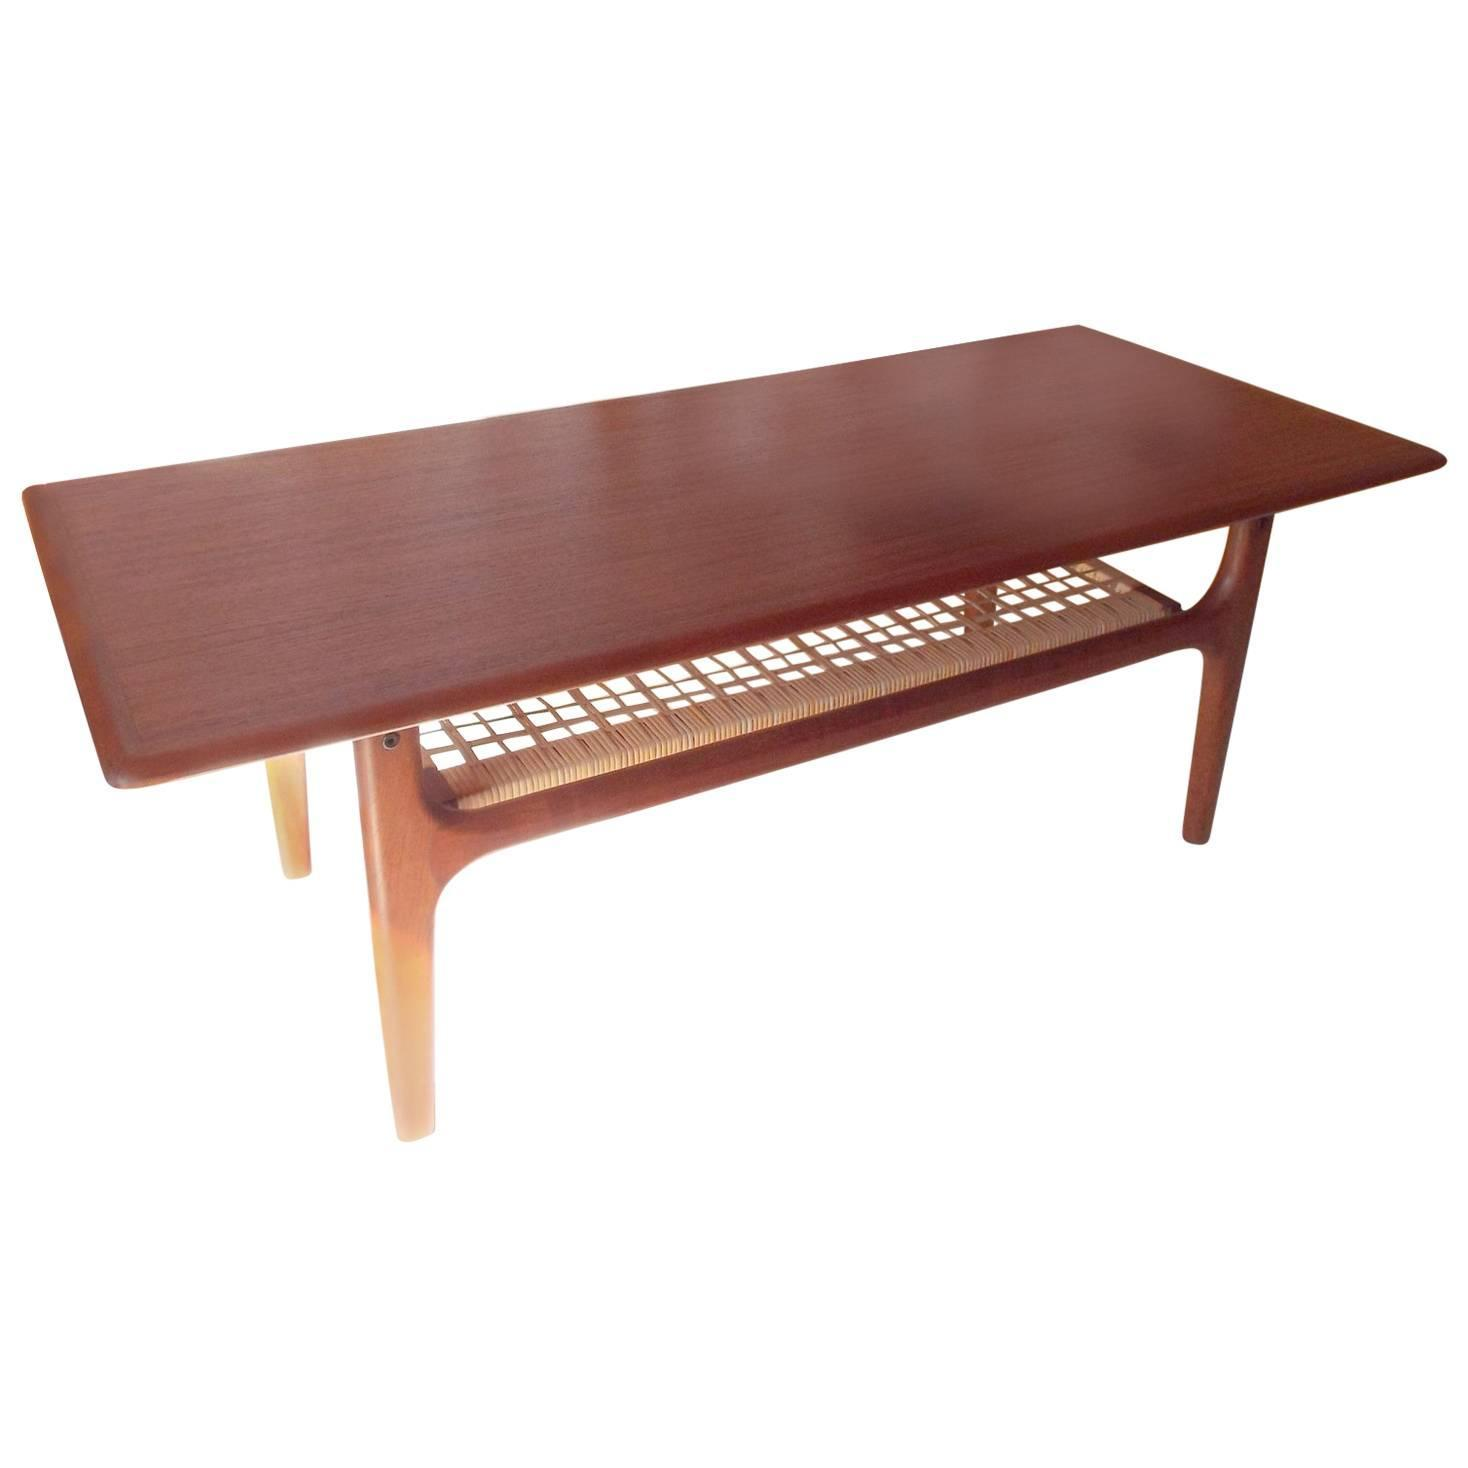 Mid Century Modern Trioh Teak and Cane Coffee Table For Sale at